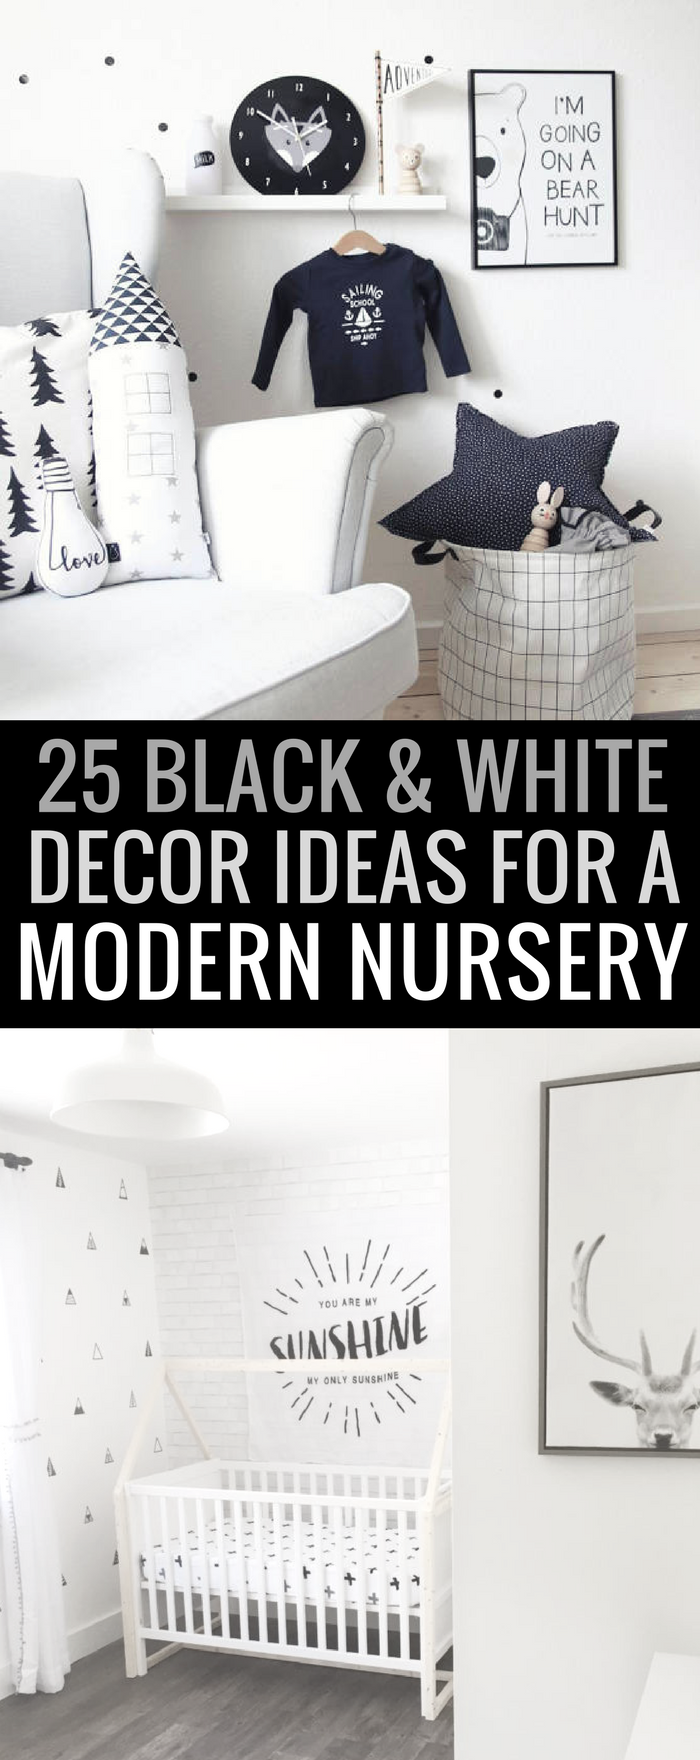 25 Black and White Decor Ideas For A Modern Neutral Nursery Design #nursery #baby #neutral #blackandwhite